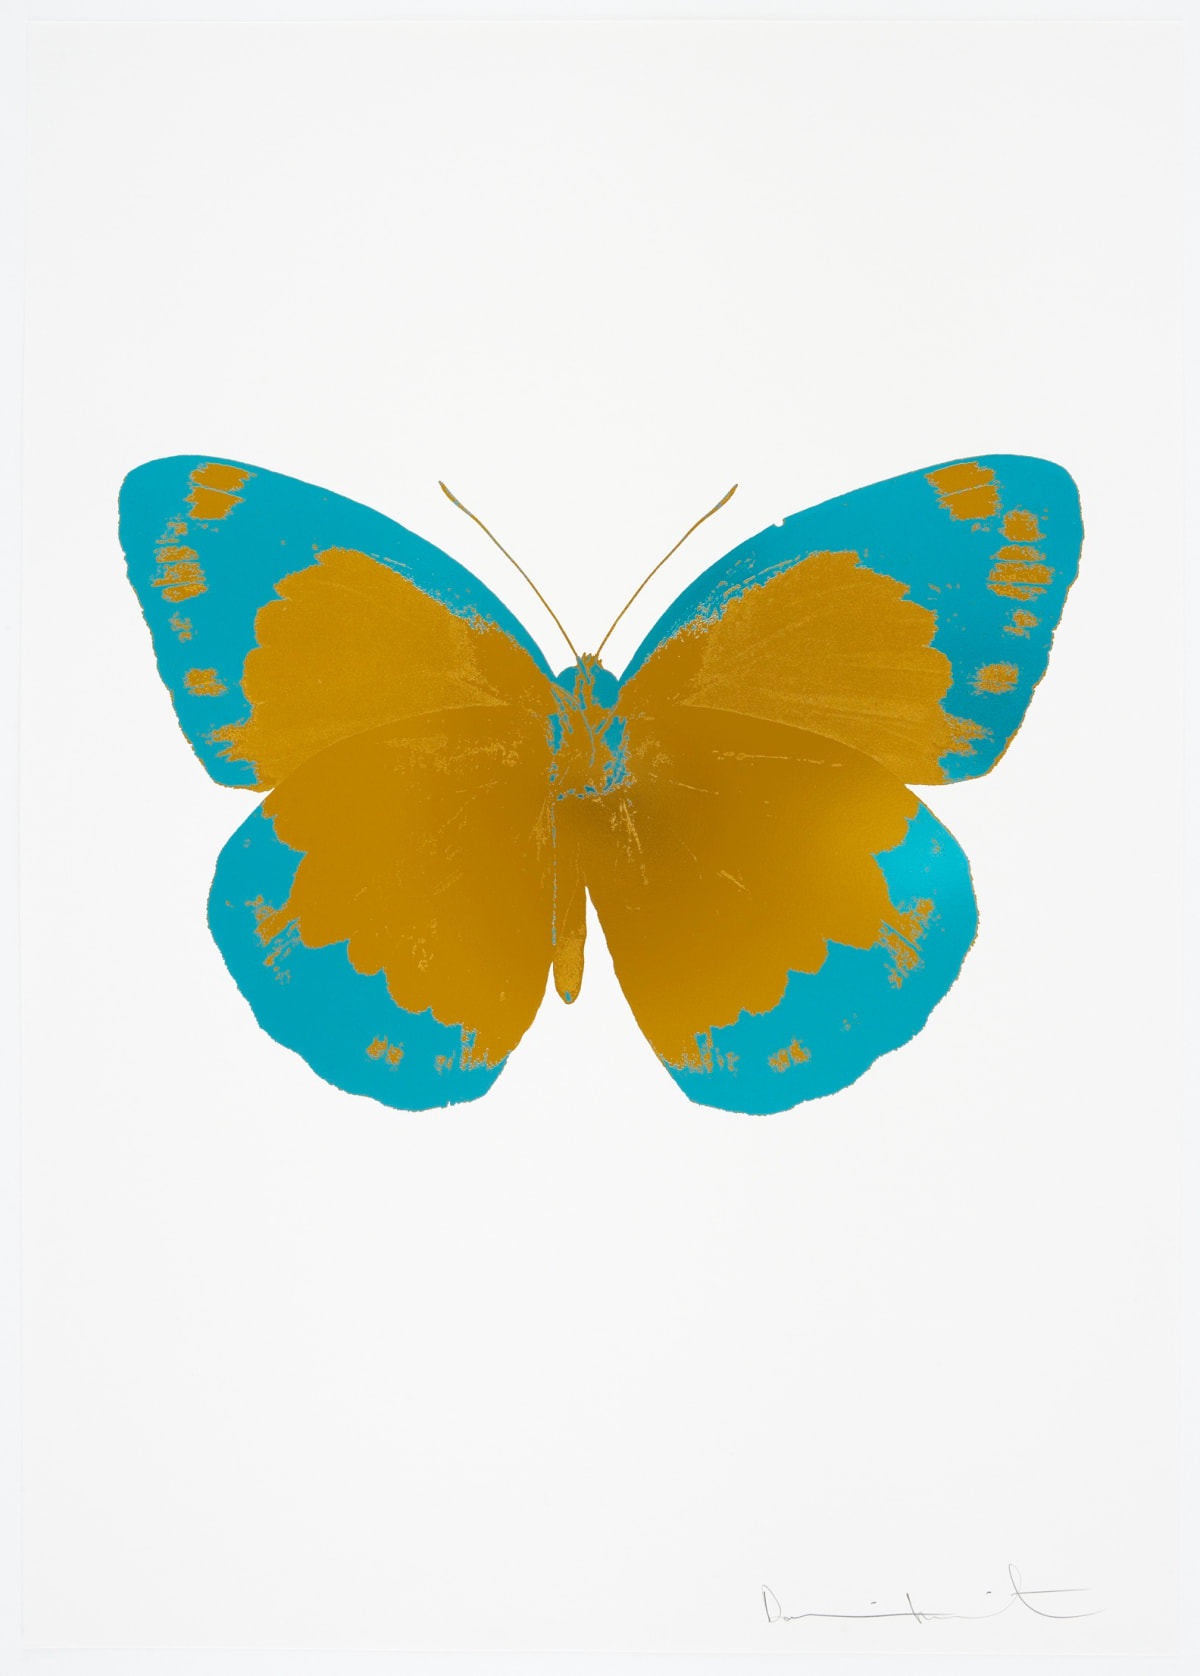 Damien Hirst The Souls II - Paradise Copper/Topaz/Blind Impression, 2010 2 colour foil block on 300gsm Arches 88 archival paper. Signed and numbered. Published by Paul Stolper and Other Criteria 72 x 51cm OC7838 / 658-21 Edition of 15